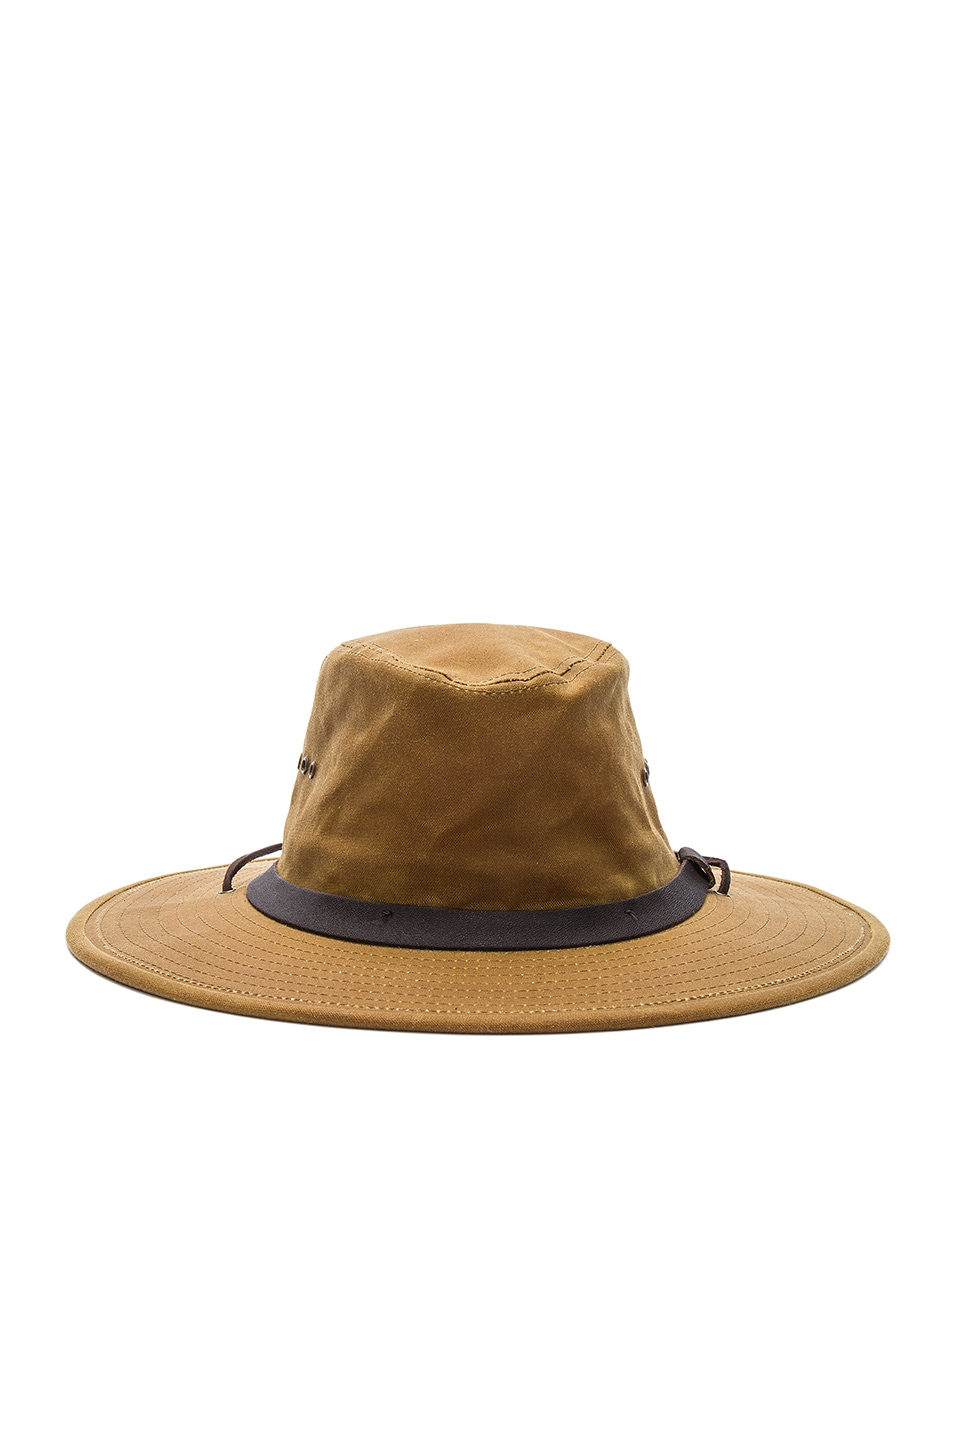 Tin Bush Hat by Filson